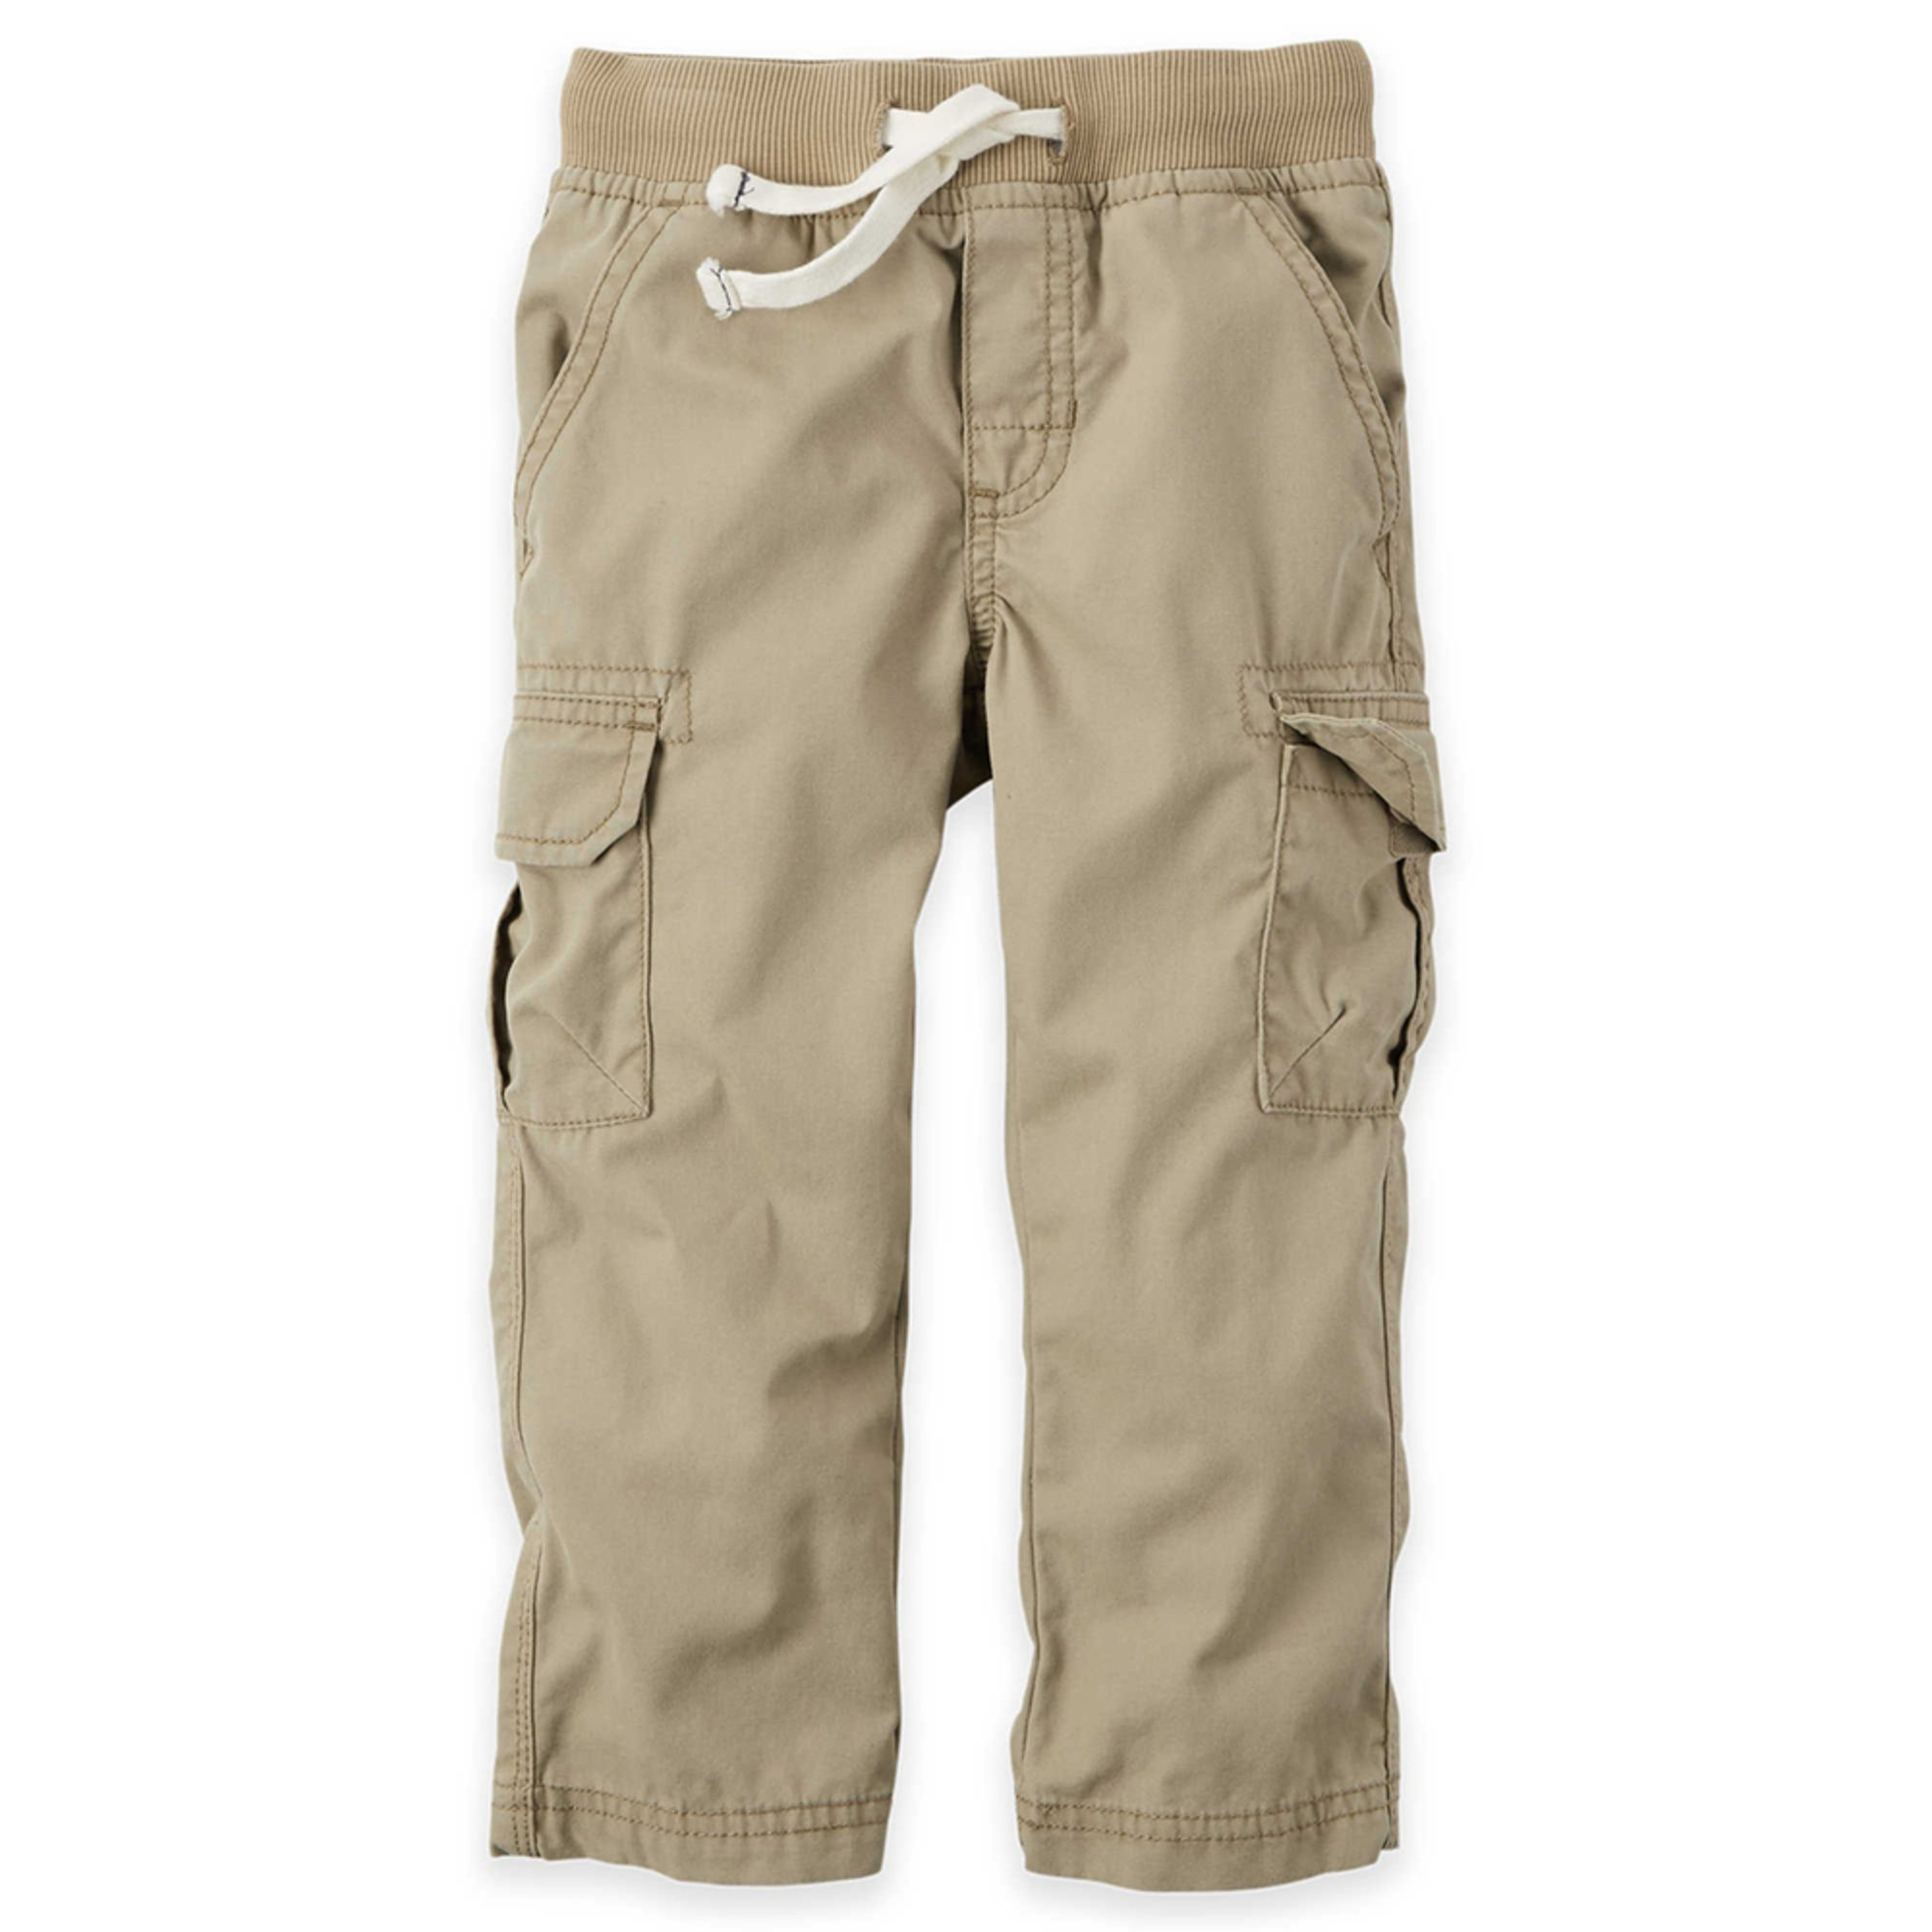 Boy Pants. Looking to outfit your little man in style? Check out our terrific selection of boys' pants. From cool cargo designs to polished, pleated silhouettes, discover the perfect pair to highlight his style.